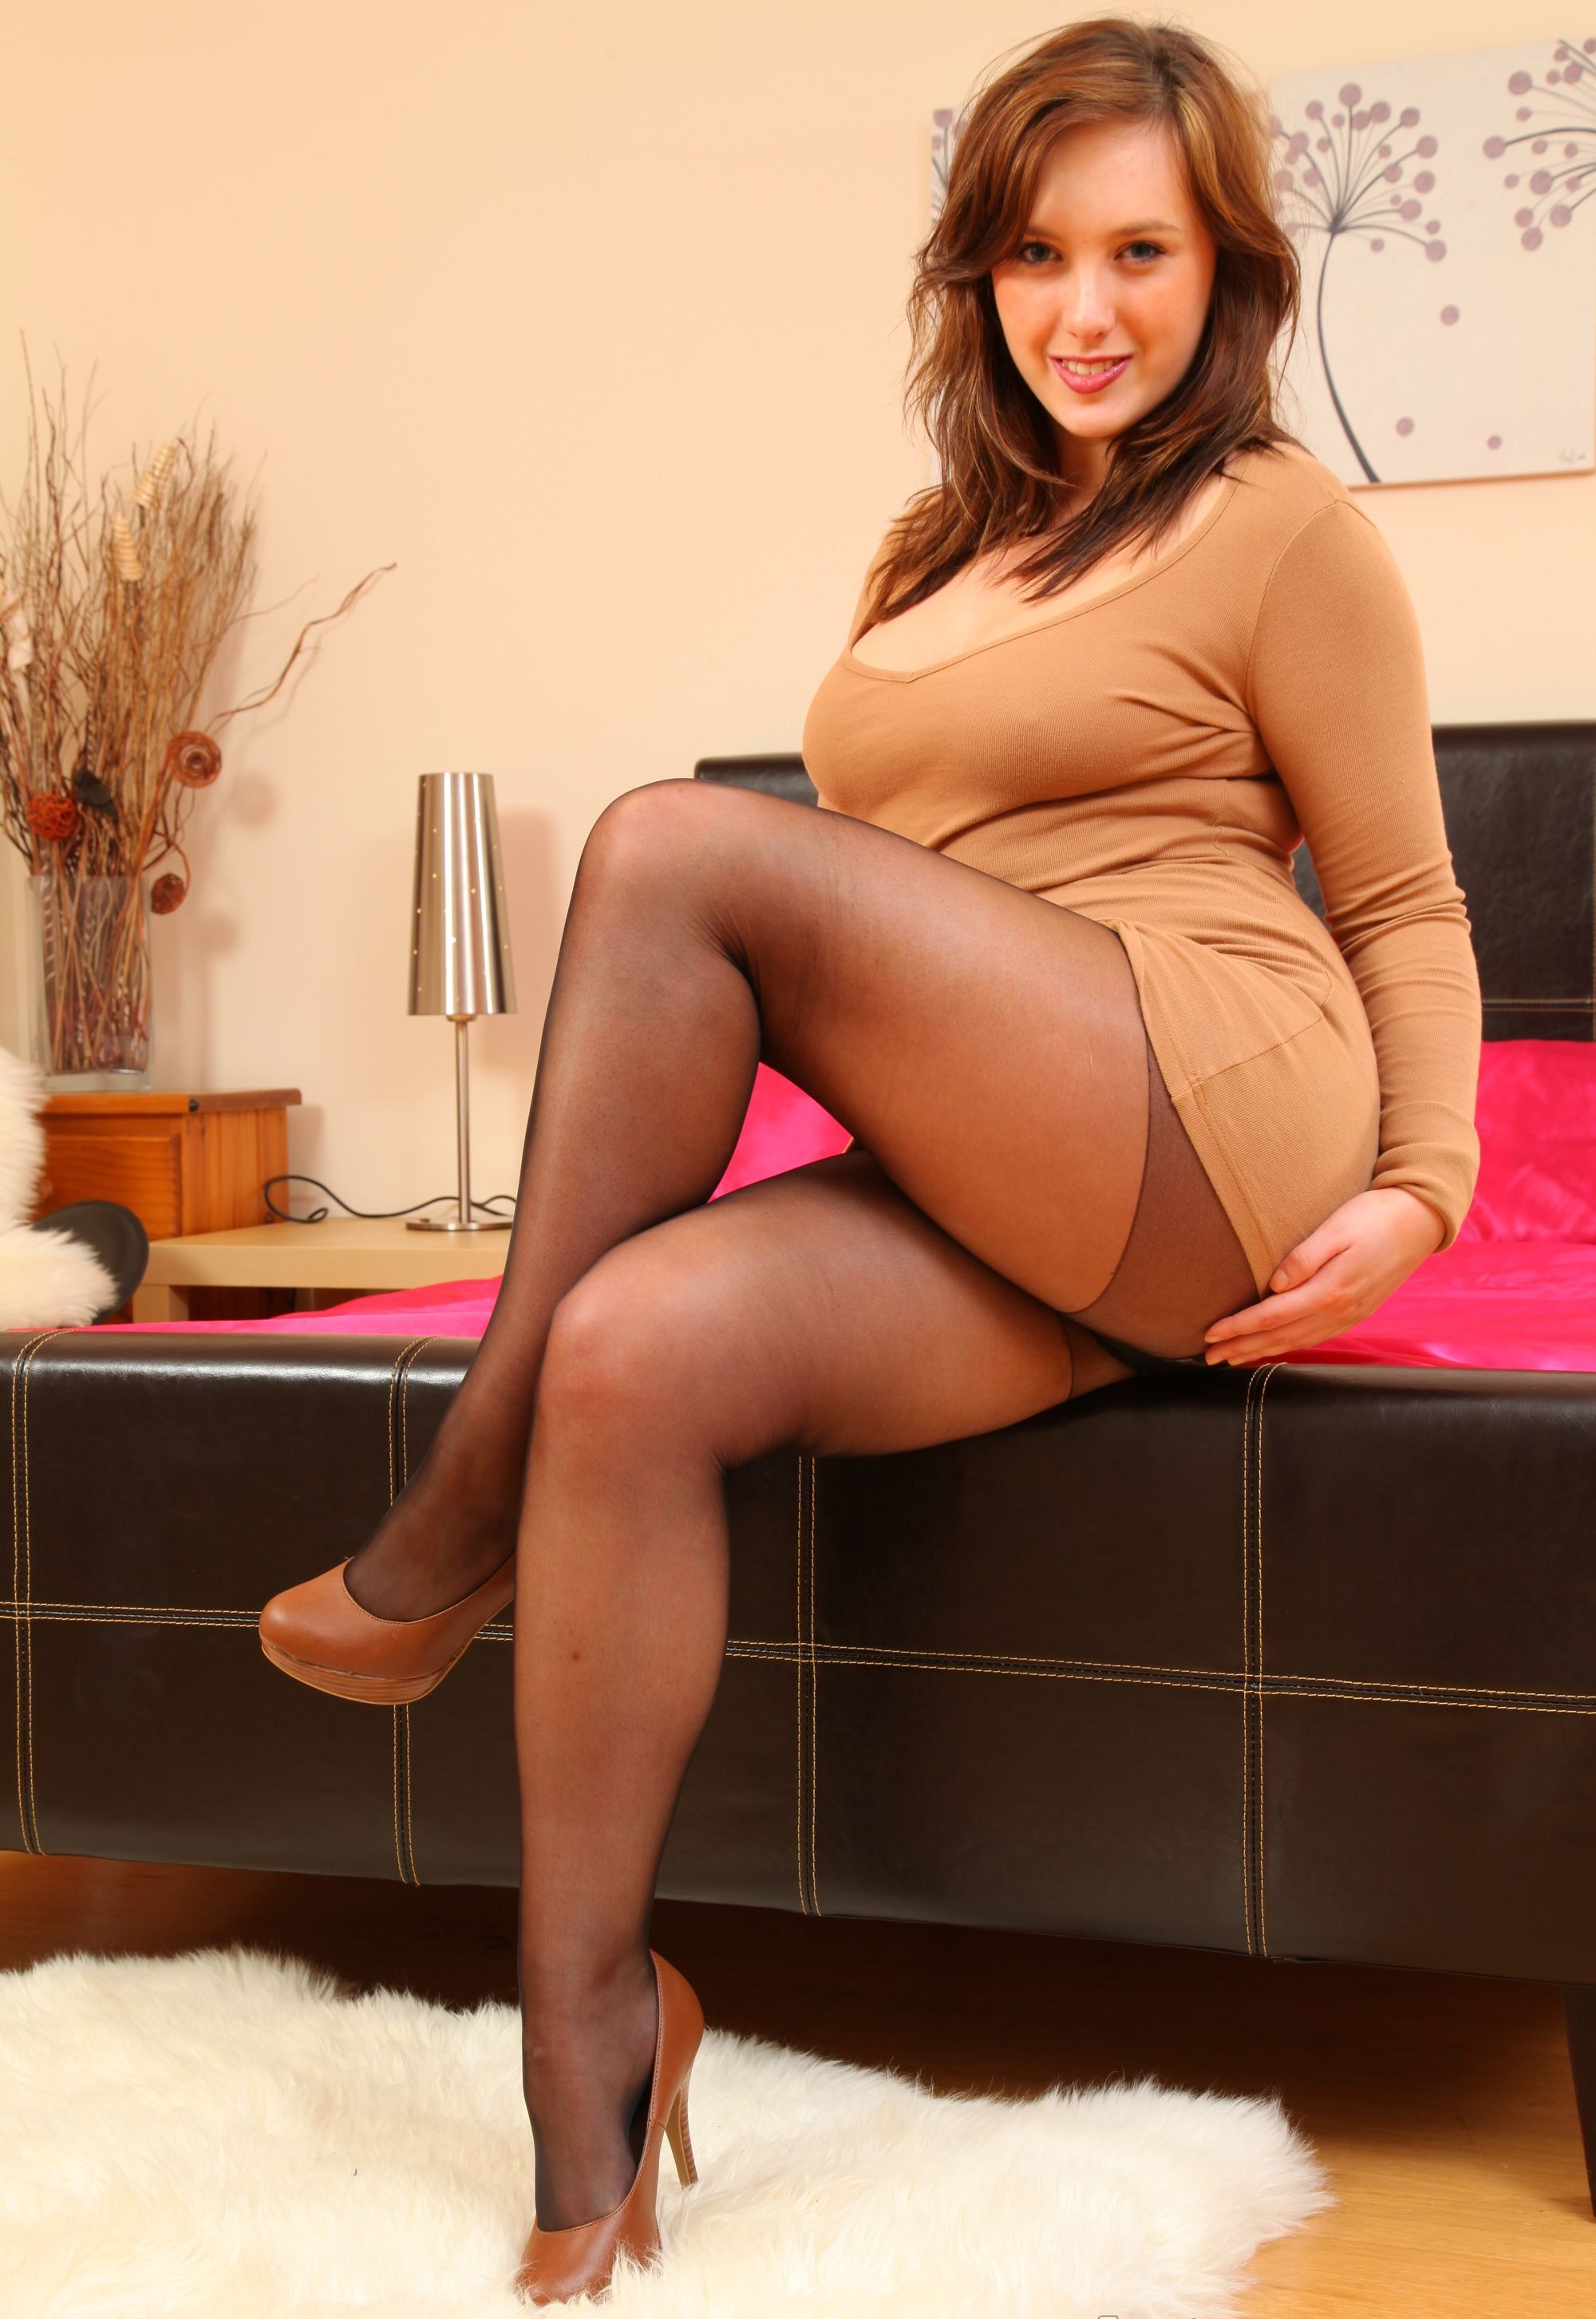 pantyhose milf | hot mature ladies, milfs and gilfs | pinterest